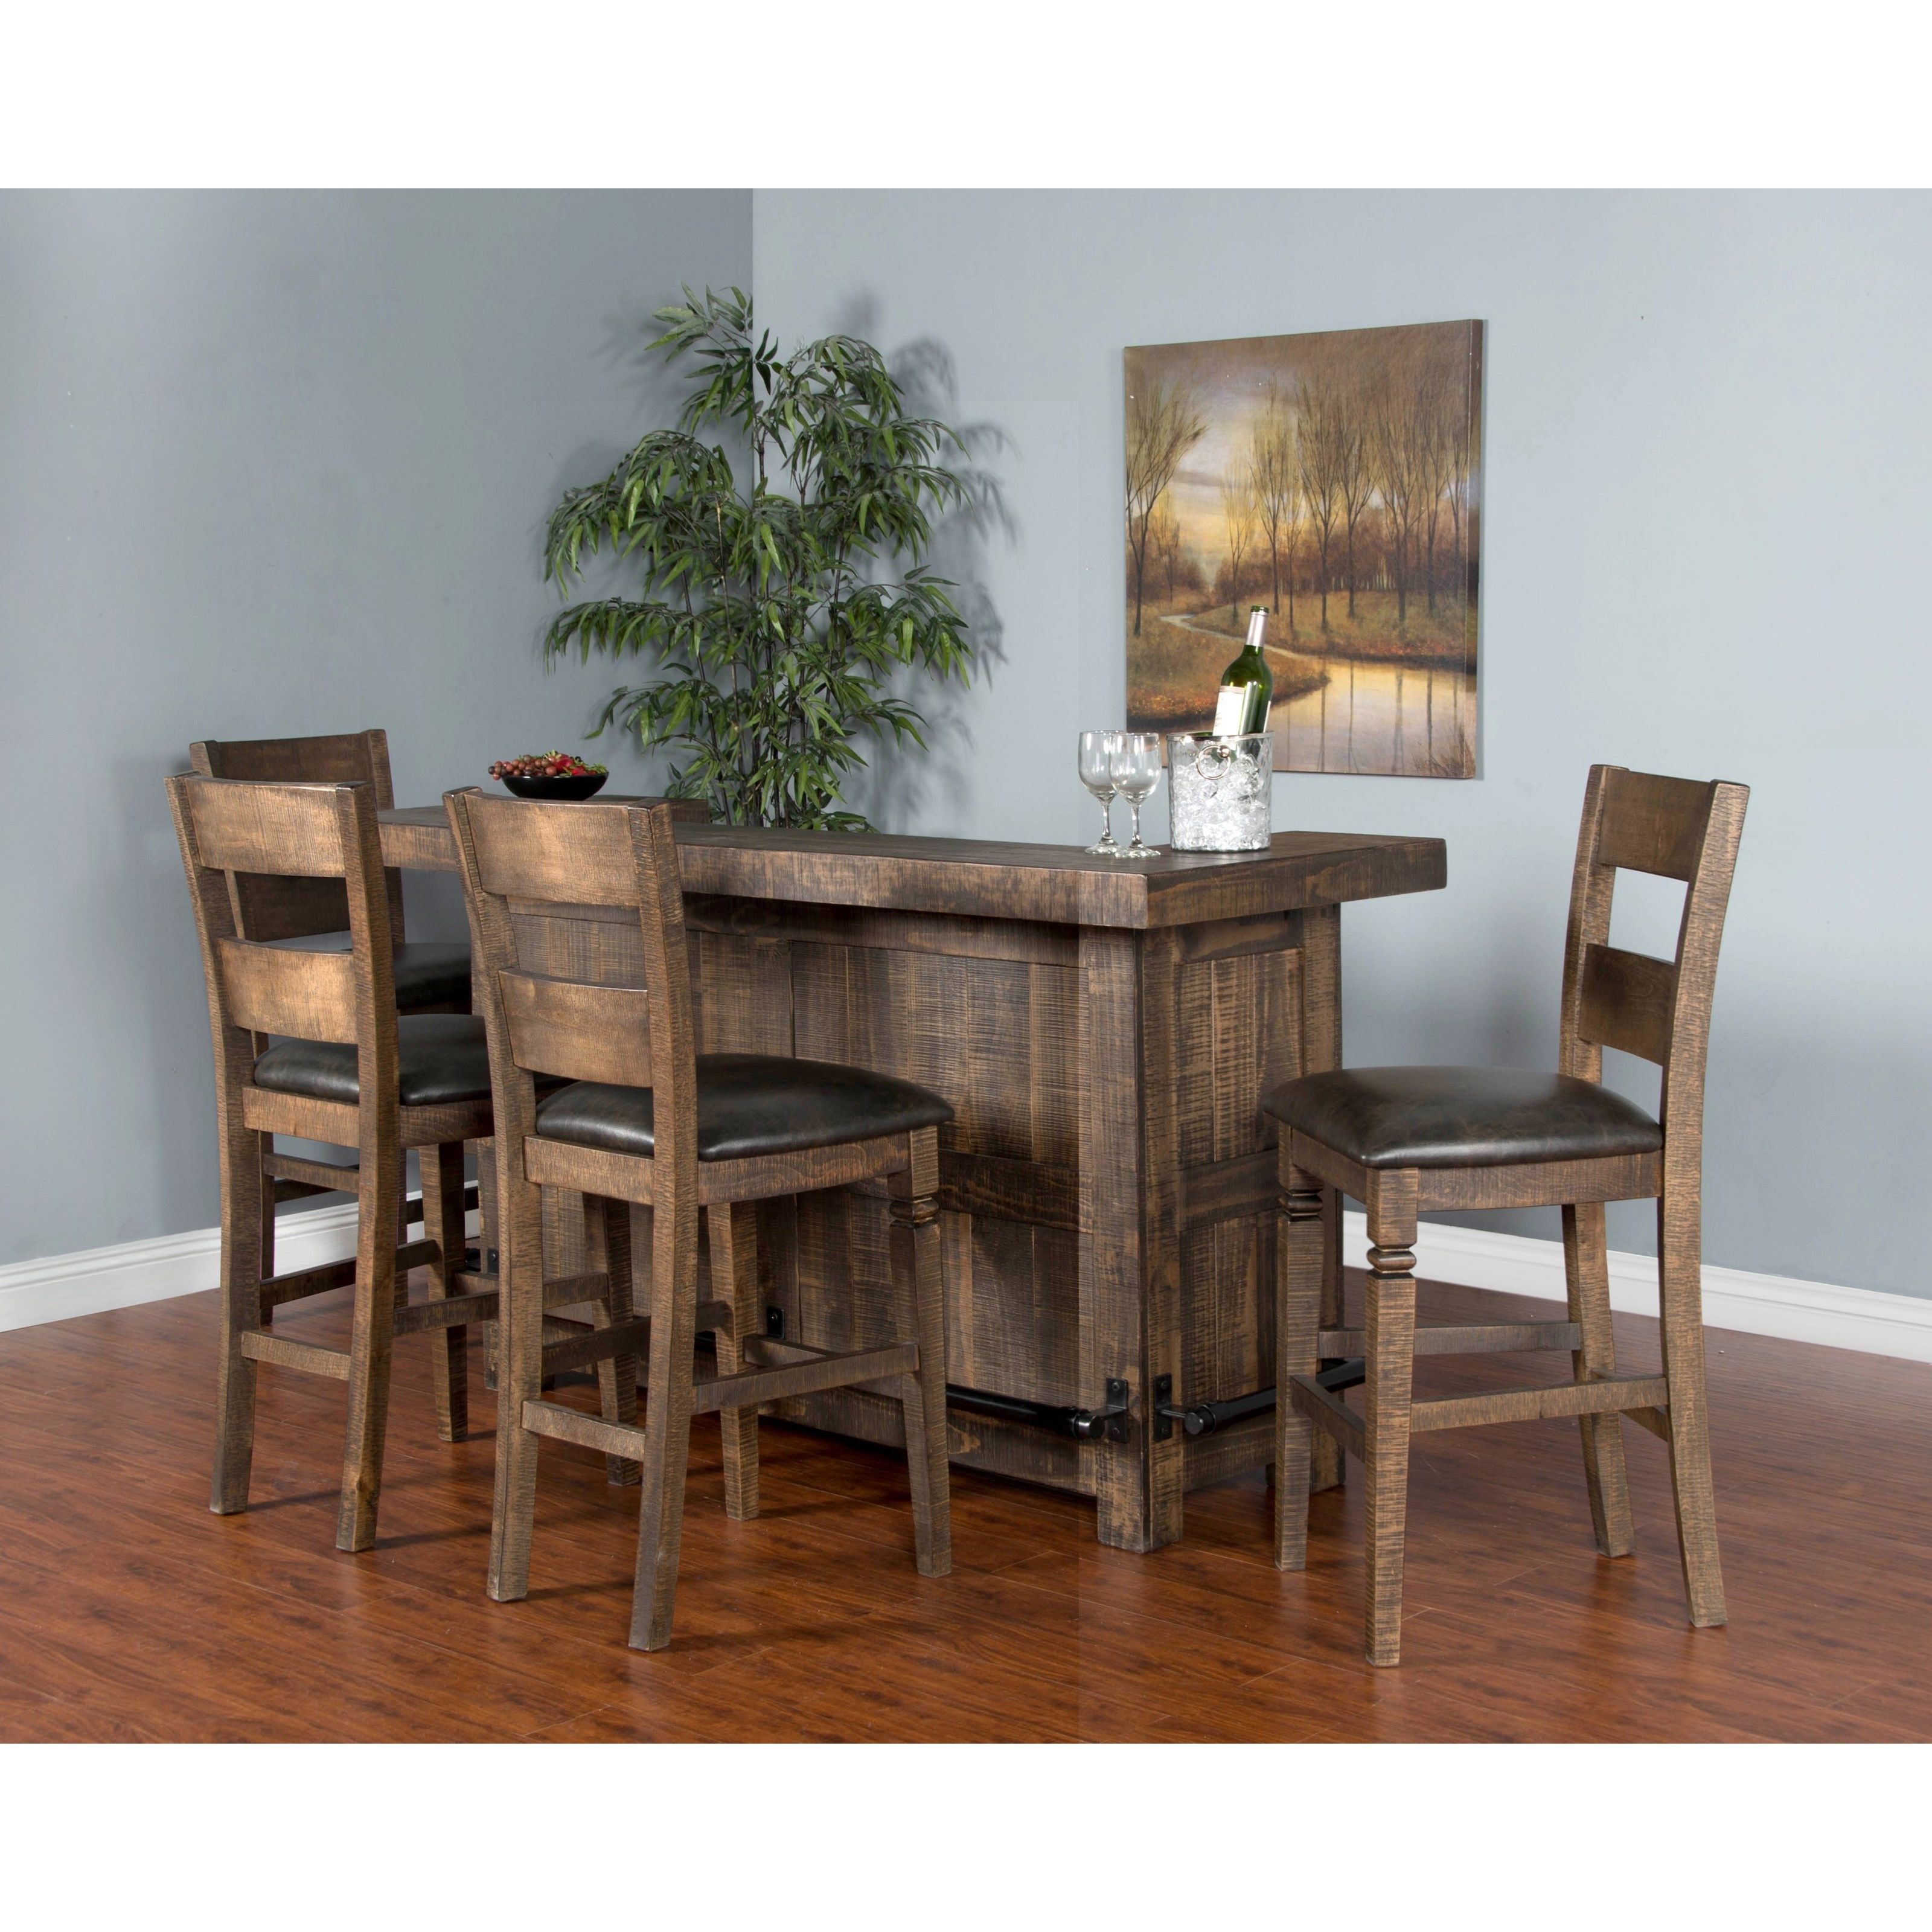 Sunny designs homestead 1963tl rustic bar furniture and for Homestead furniture and appliances